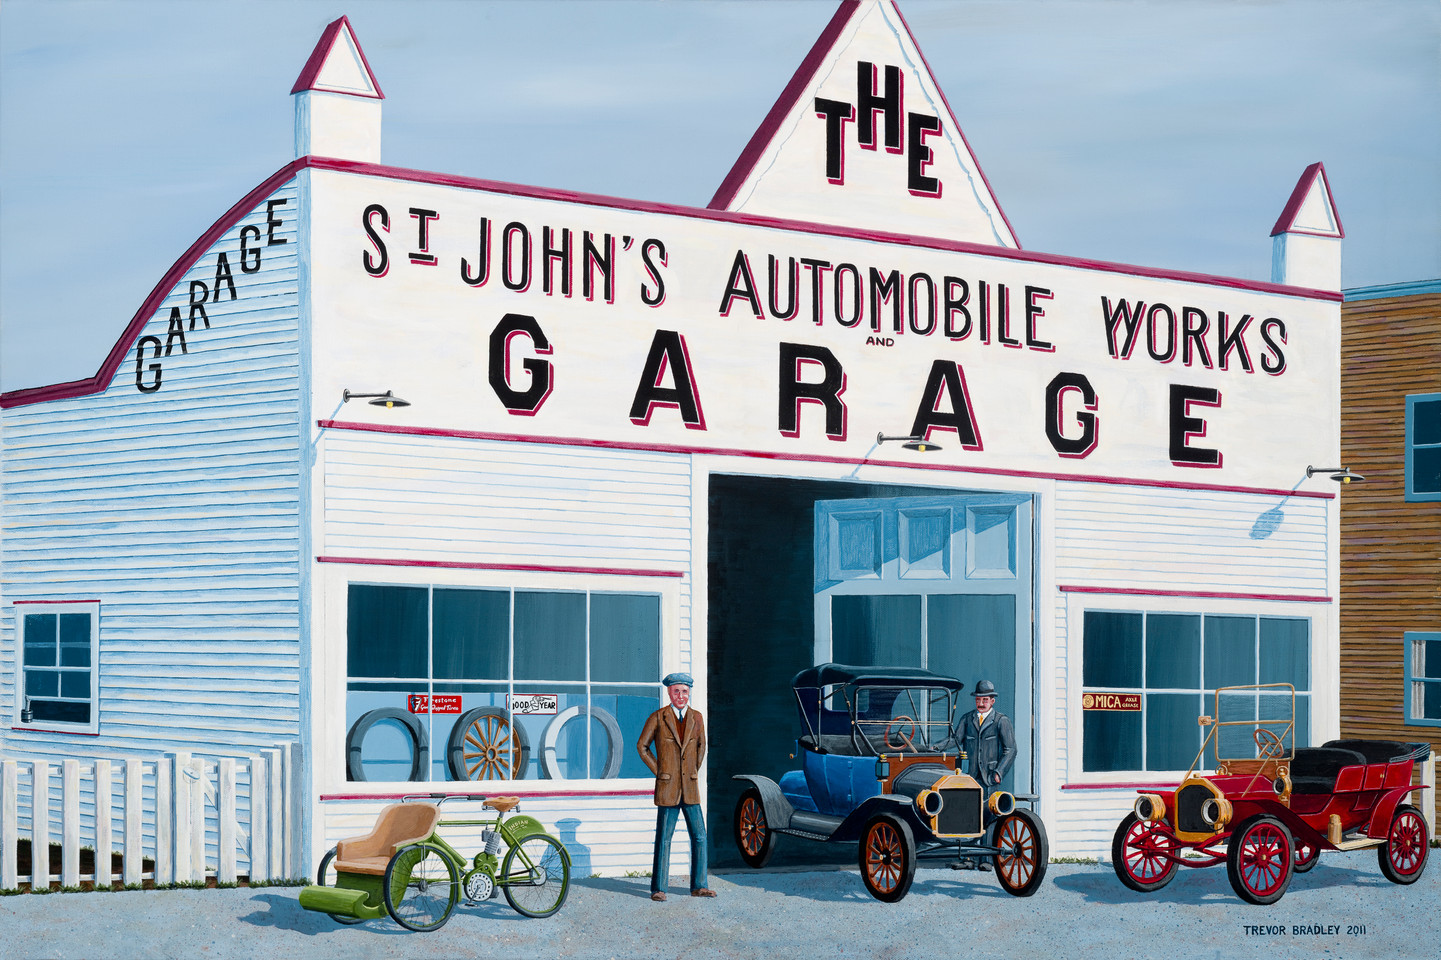 St. John's Automobile Works